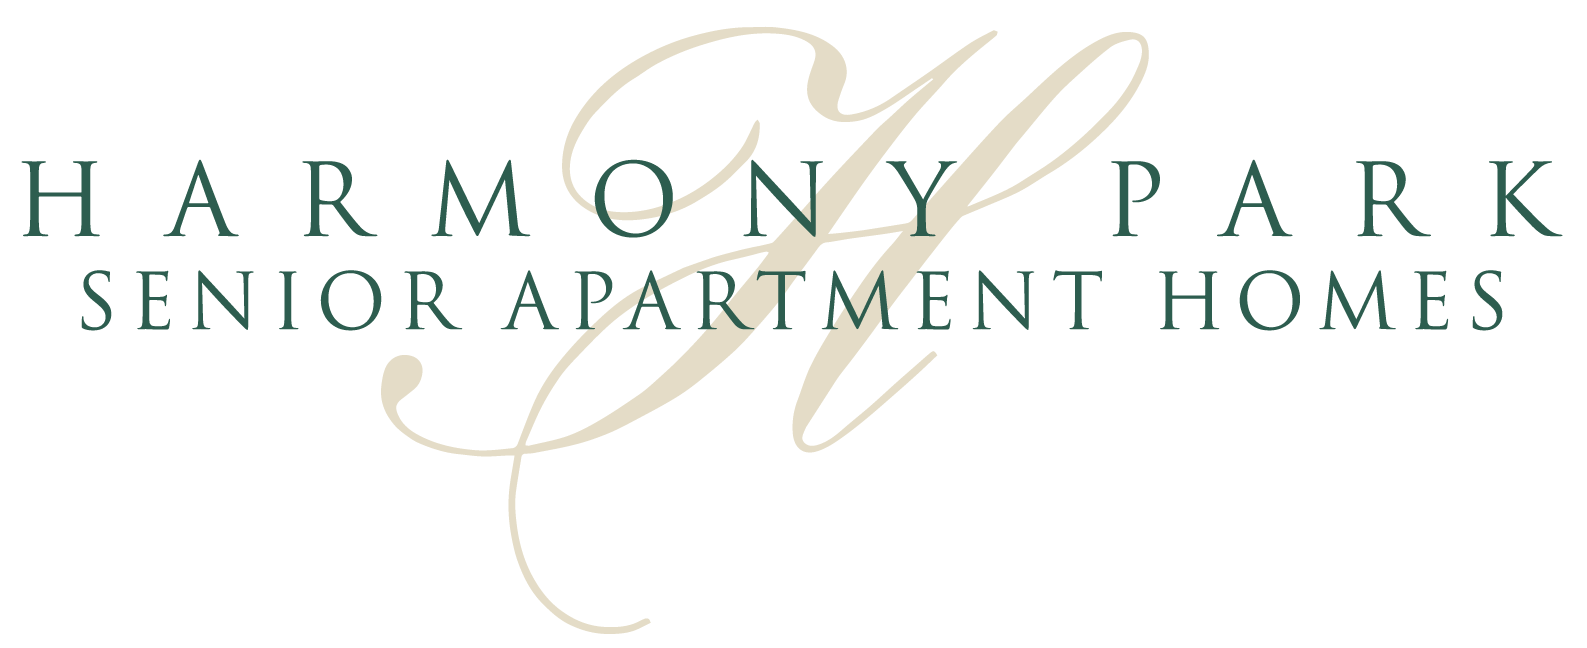 Harmony Park Senior Apartment Homes Logo